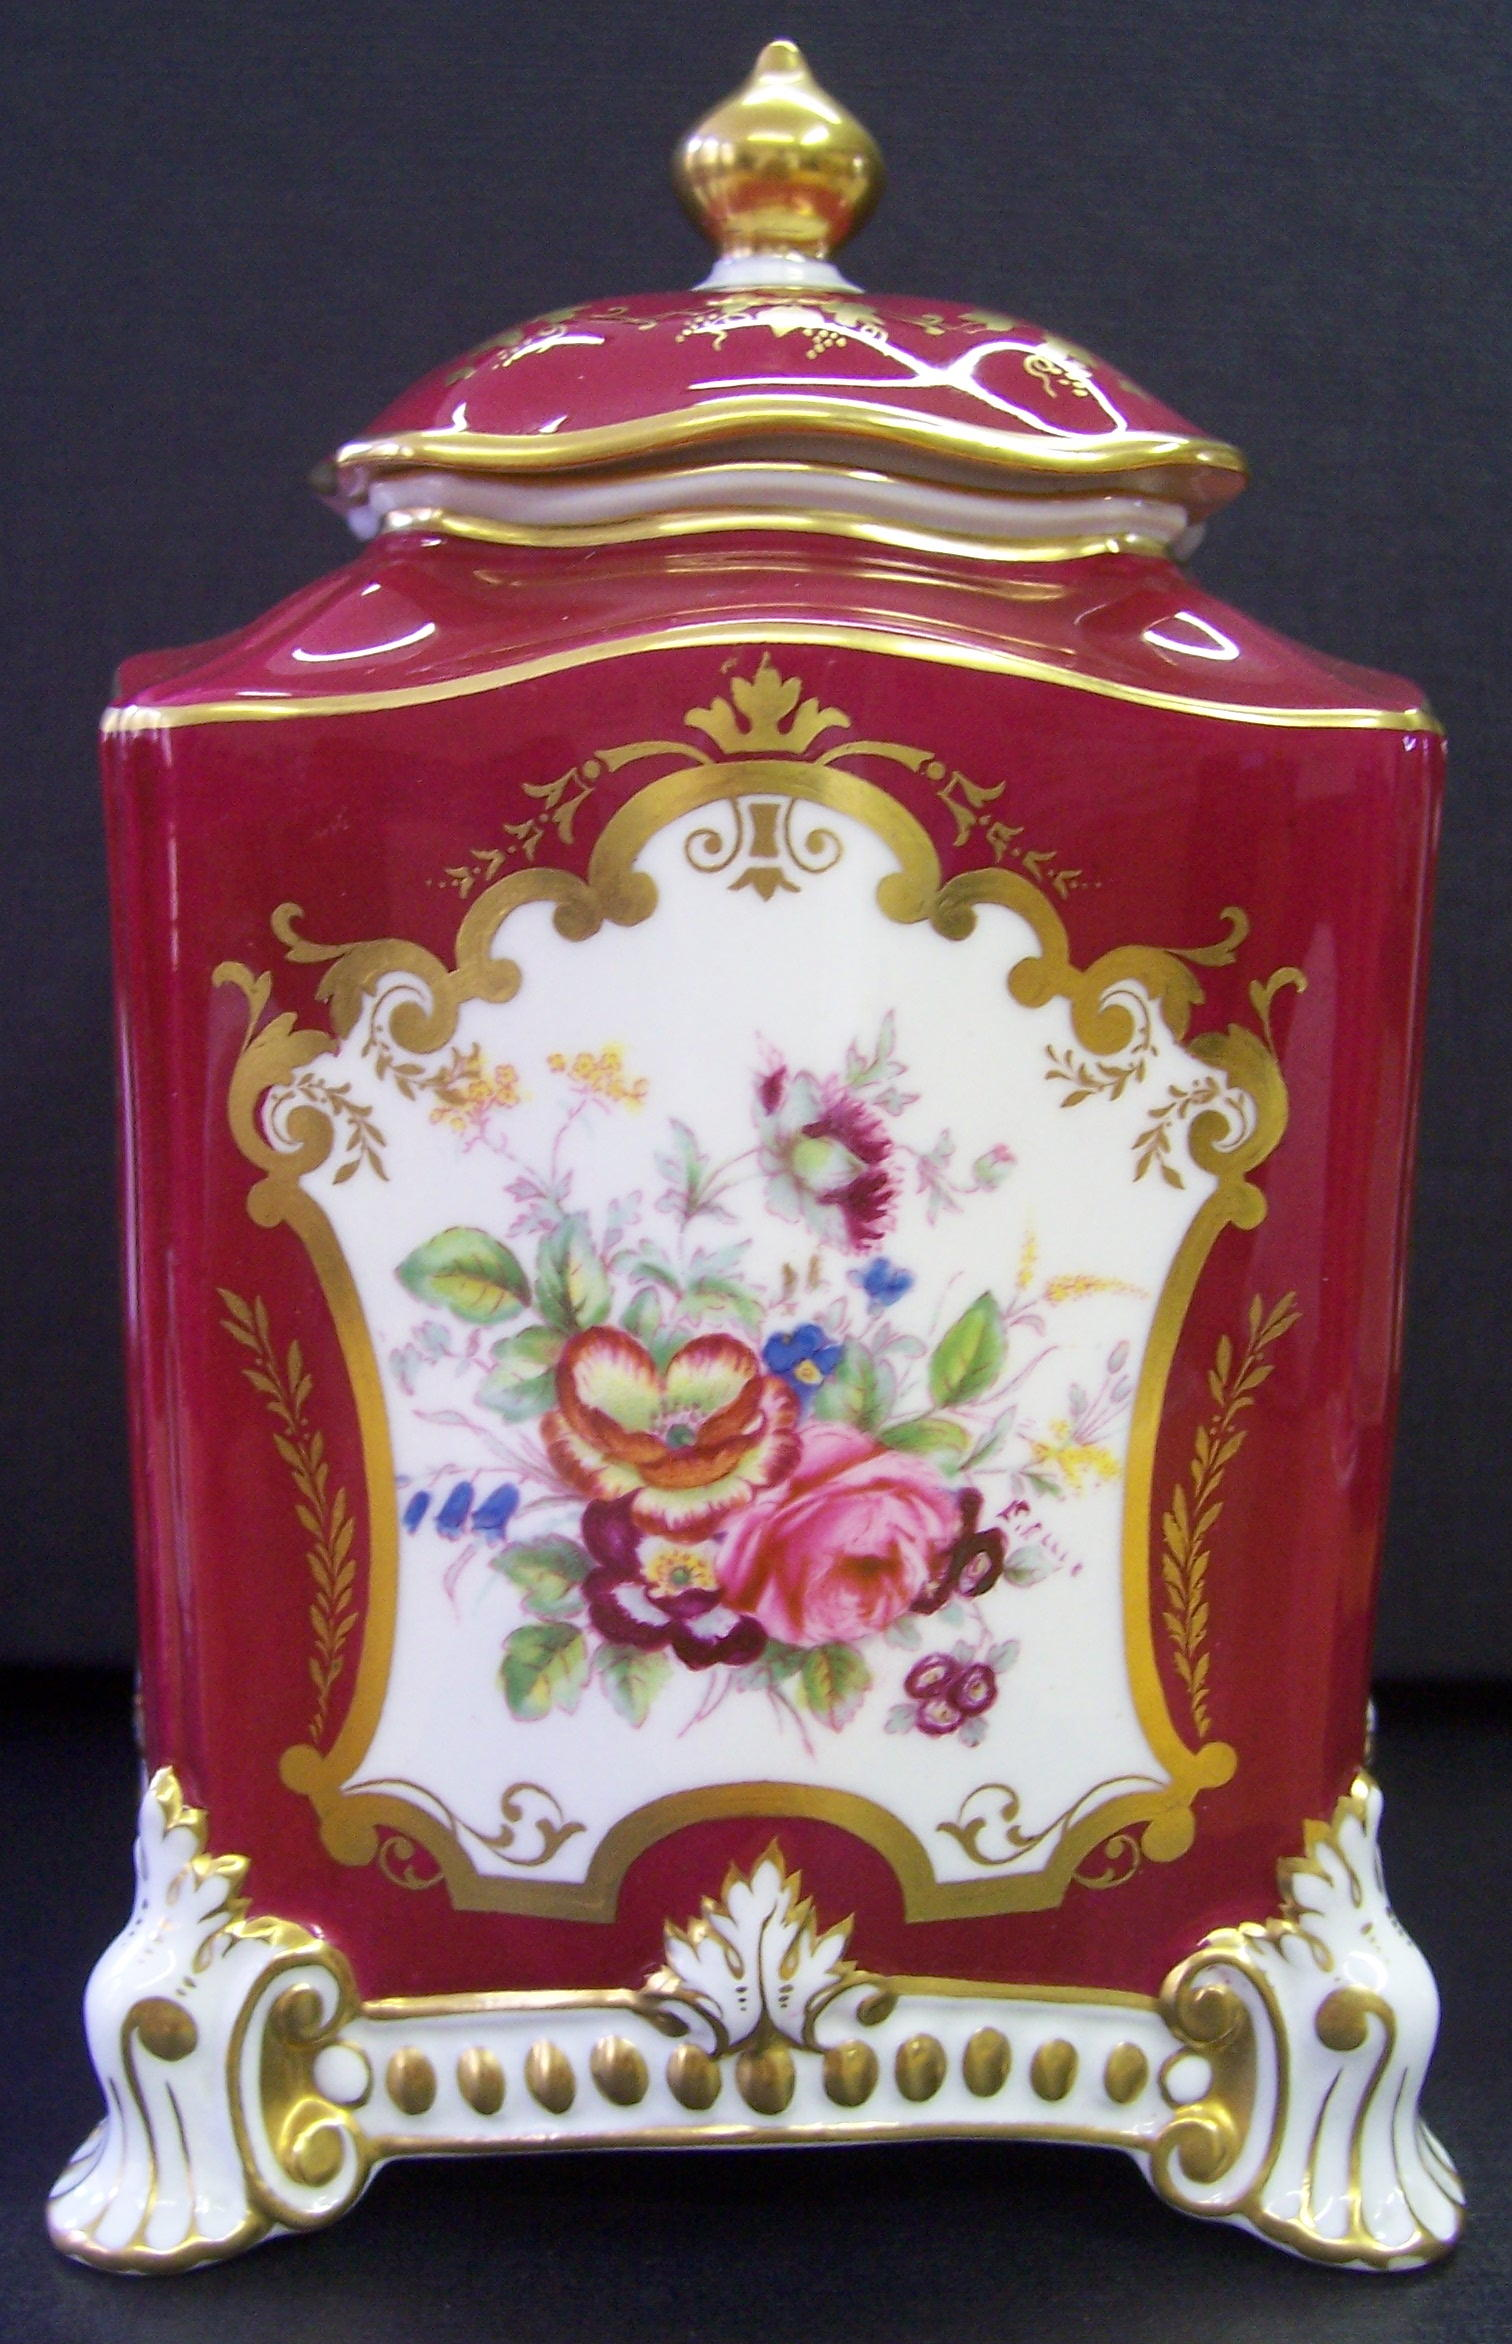 royal-crown-derby-maroon-ellis-caddie-1796-shape